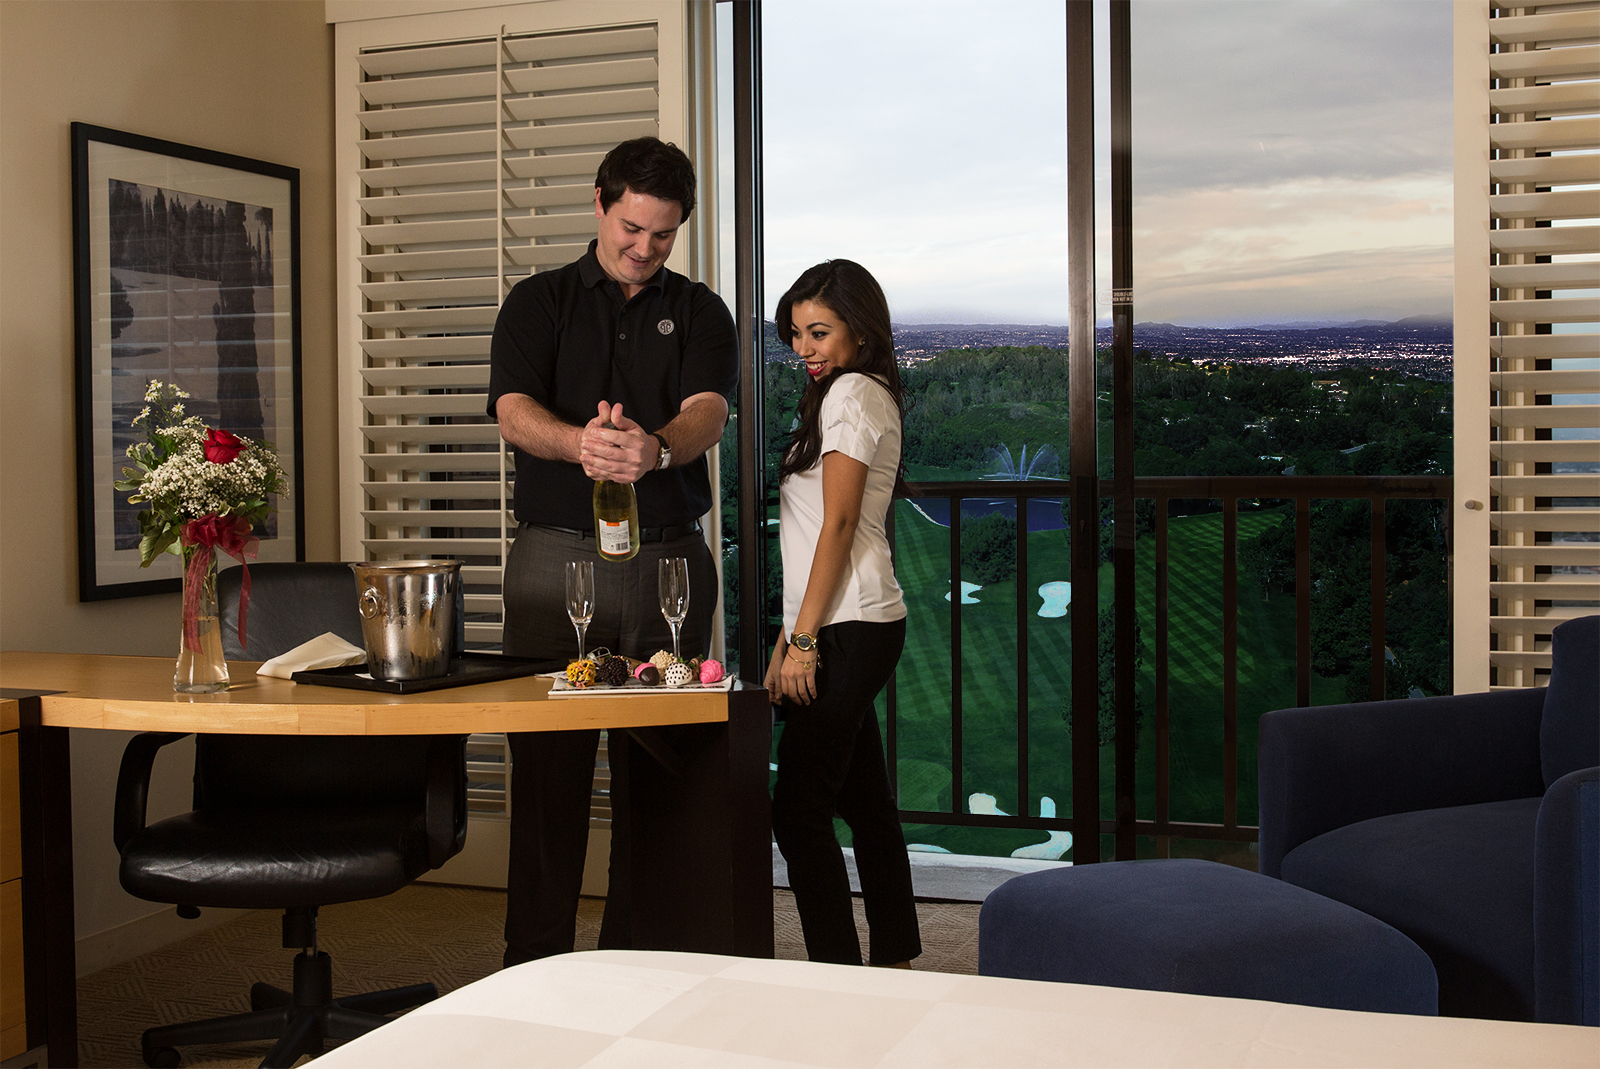 romance-room-golfcourse-photoshoped-crop.jpg